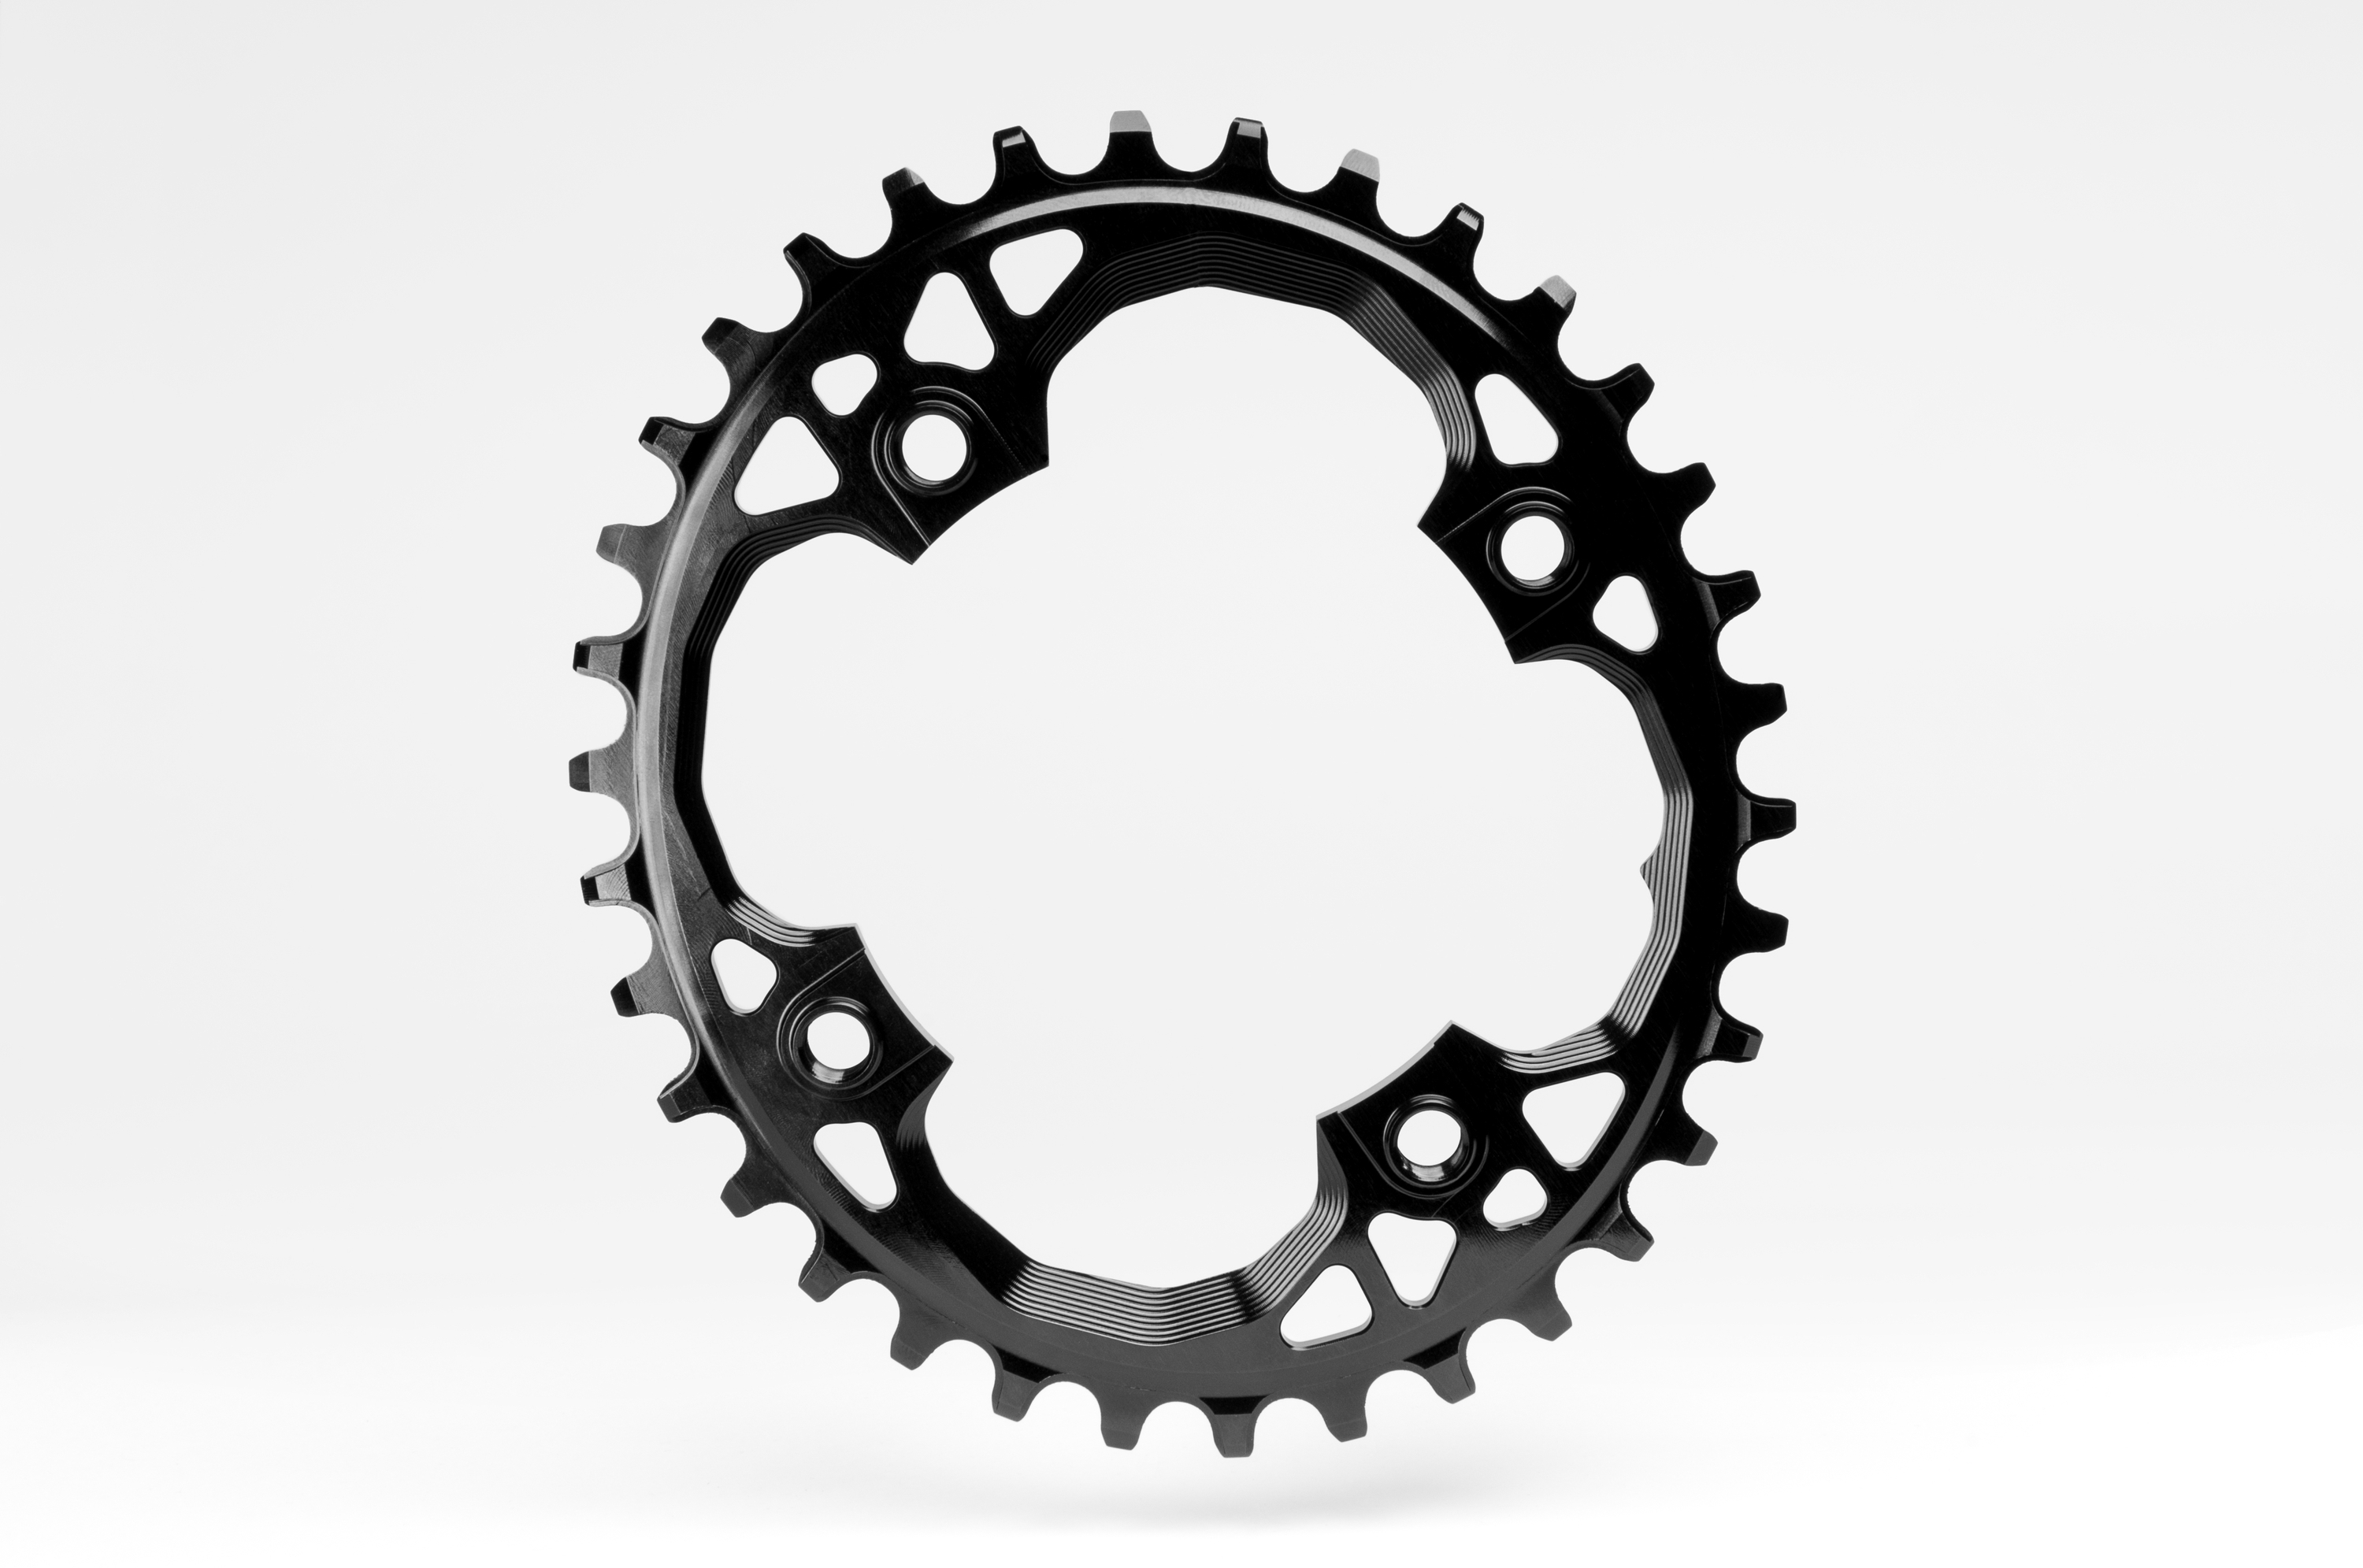 OVAL 94 BCD N/W chainring for SRAM